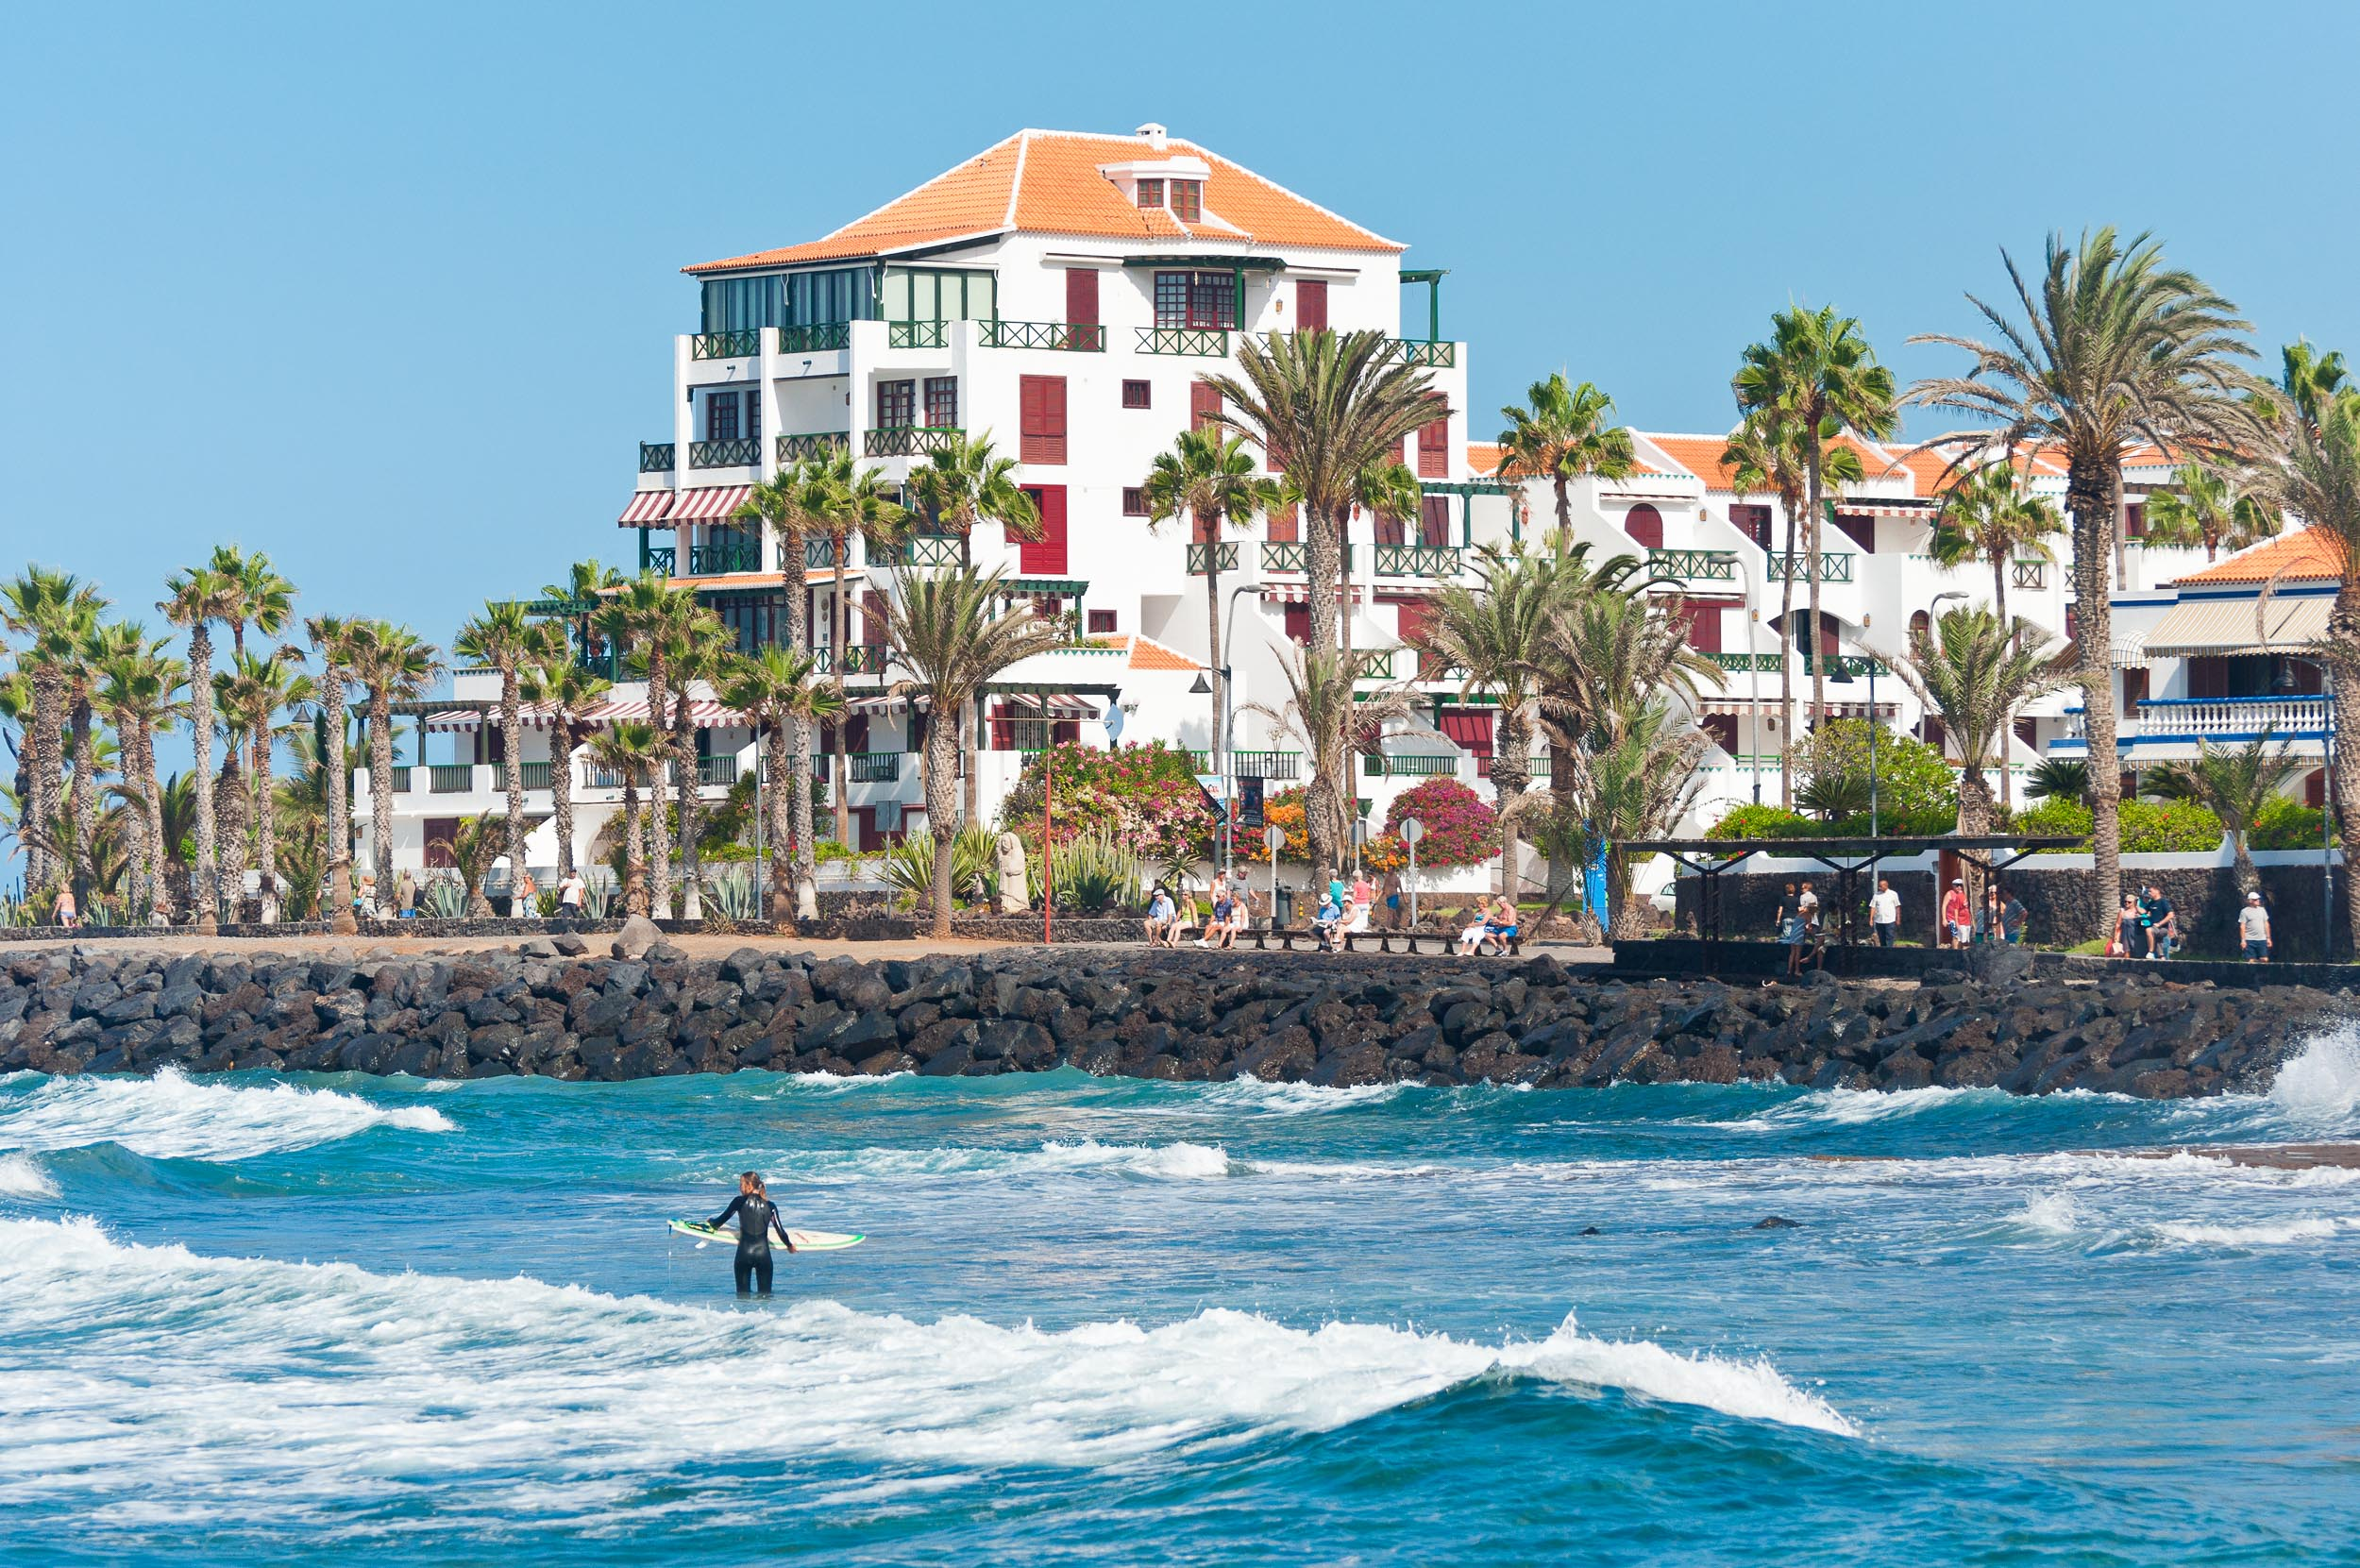 Surfing - Canary Islands